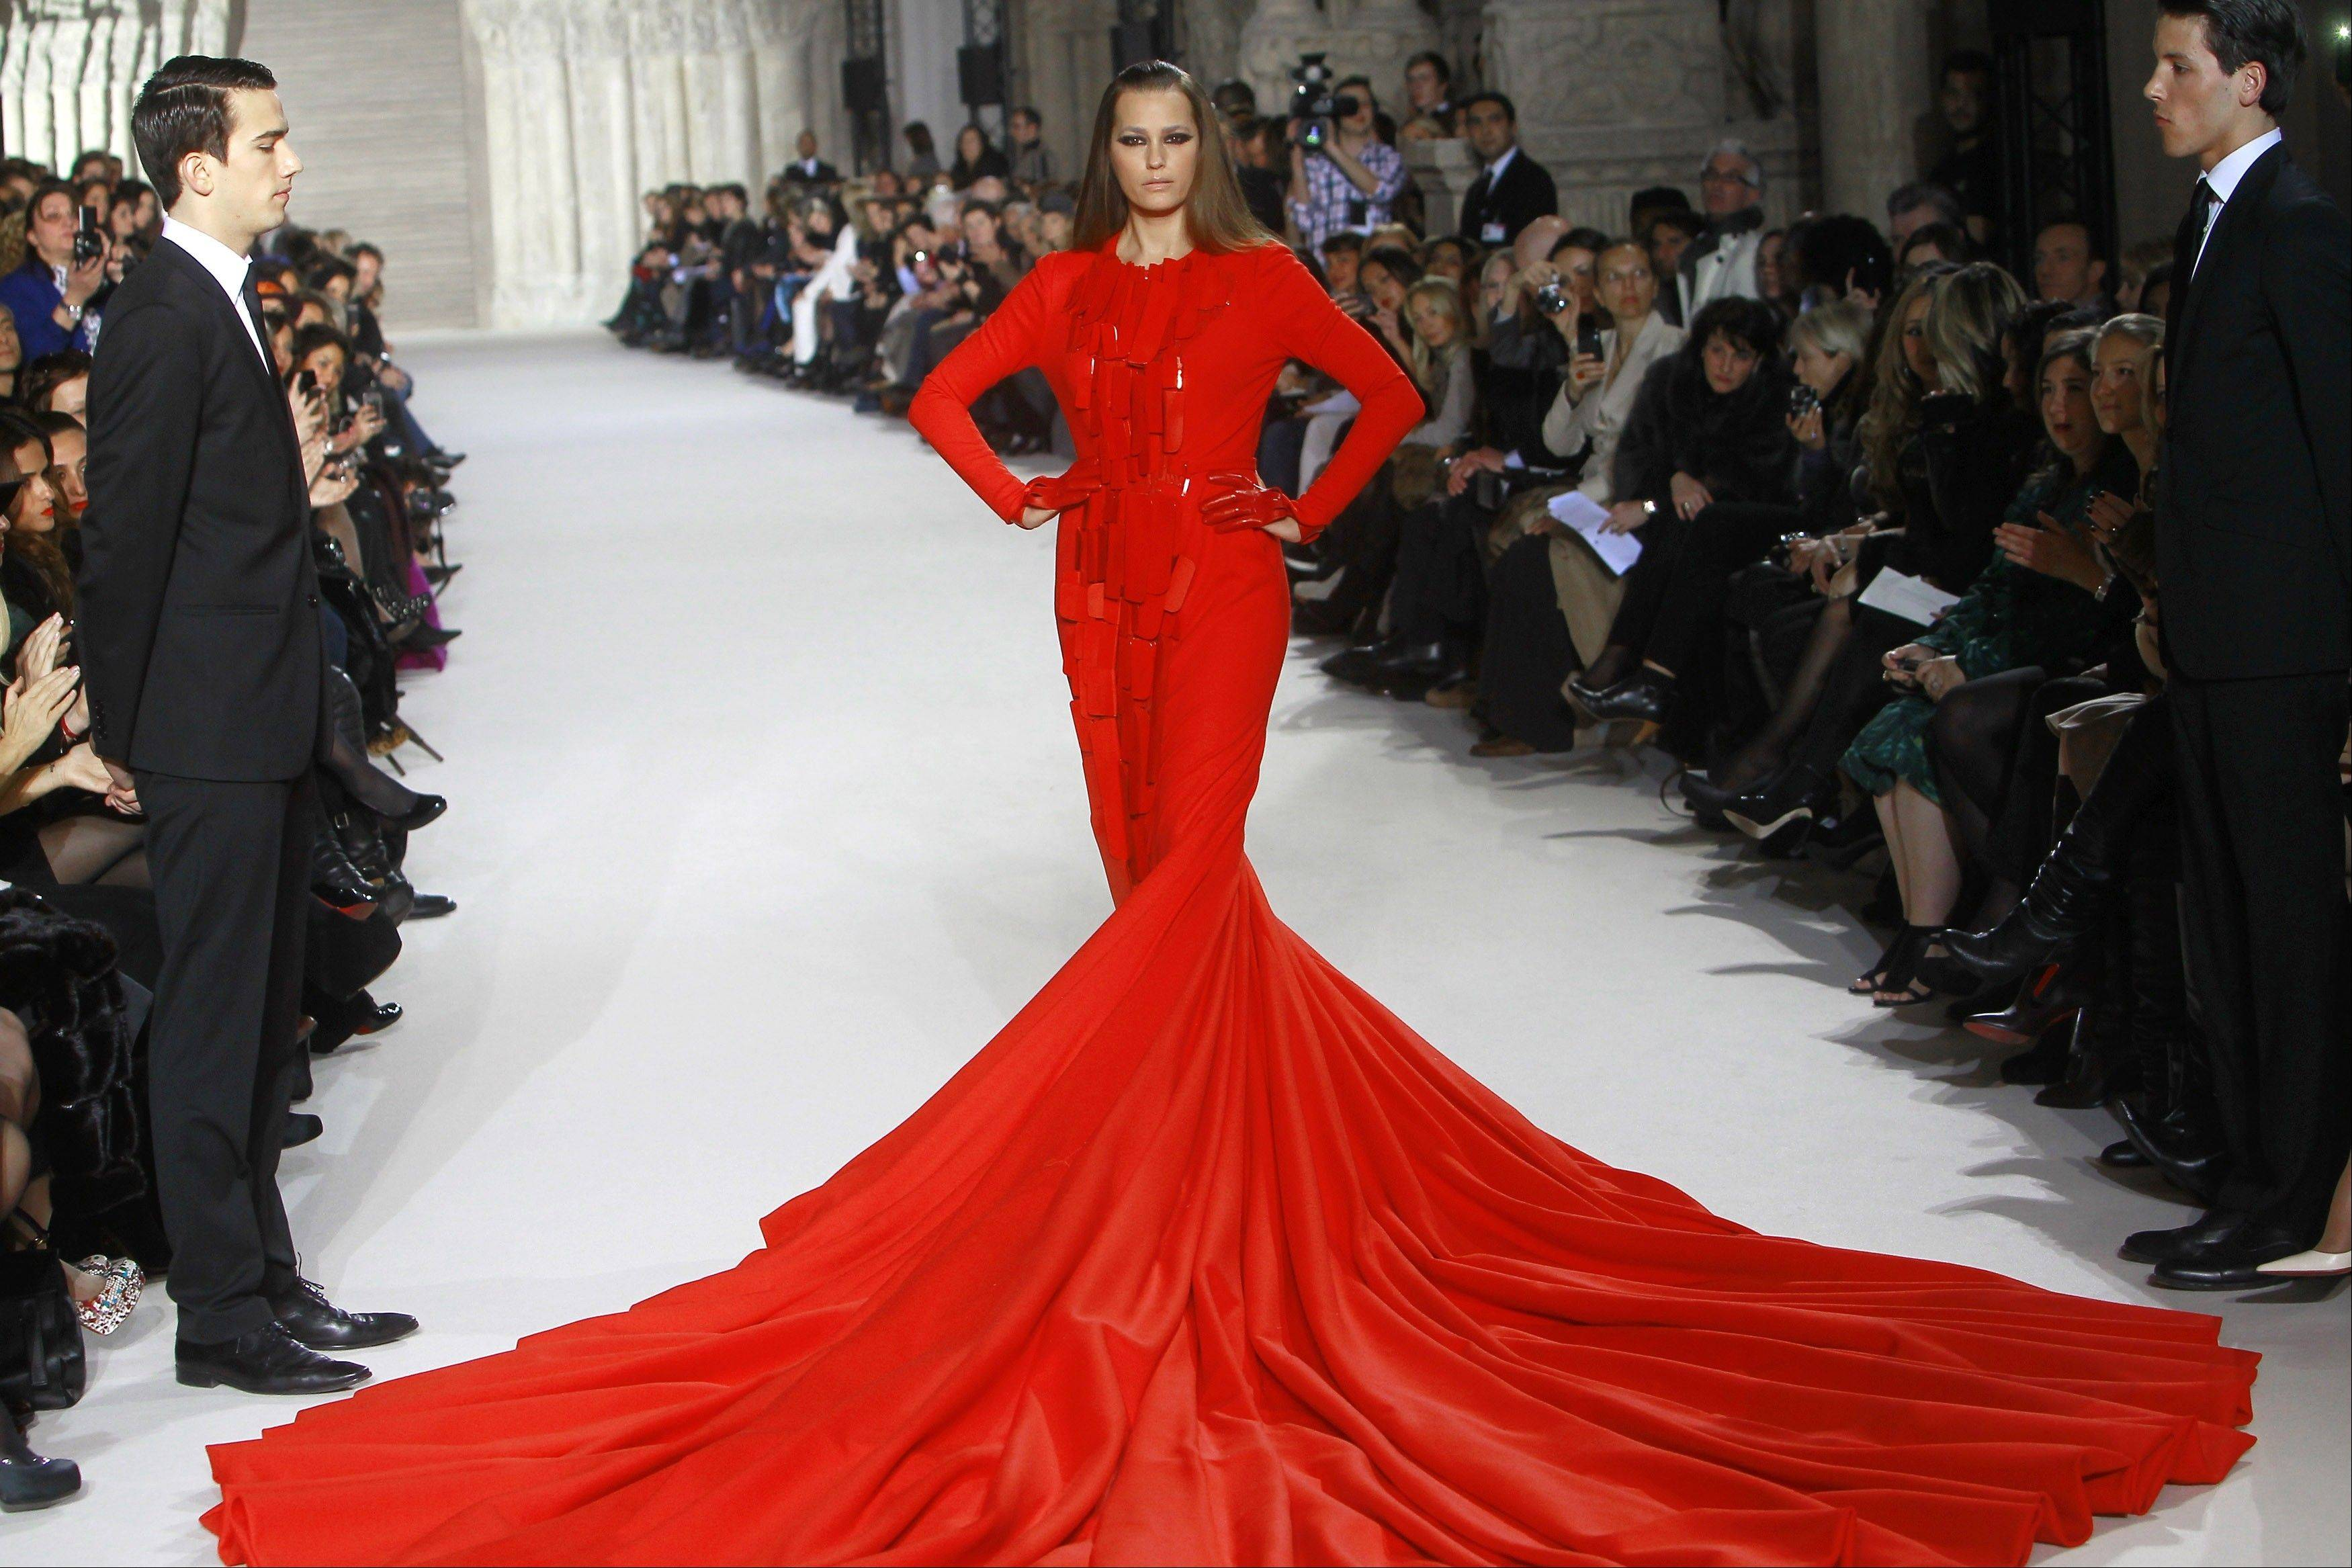 A model wears a creation by French fashion designer Stephane Rolland as part of his presentation Women's Spring Summer 2012 Haute Couture fashion collection presented in Paris, Tuesday, Jan. 24, 2012.